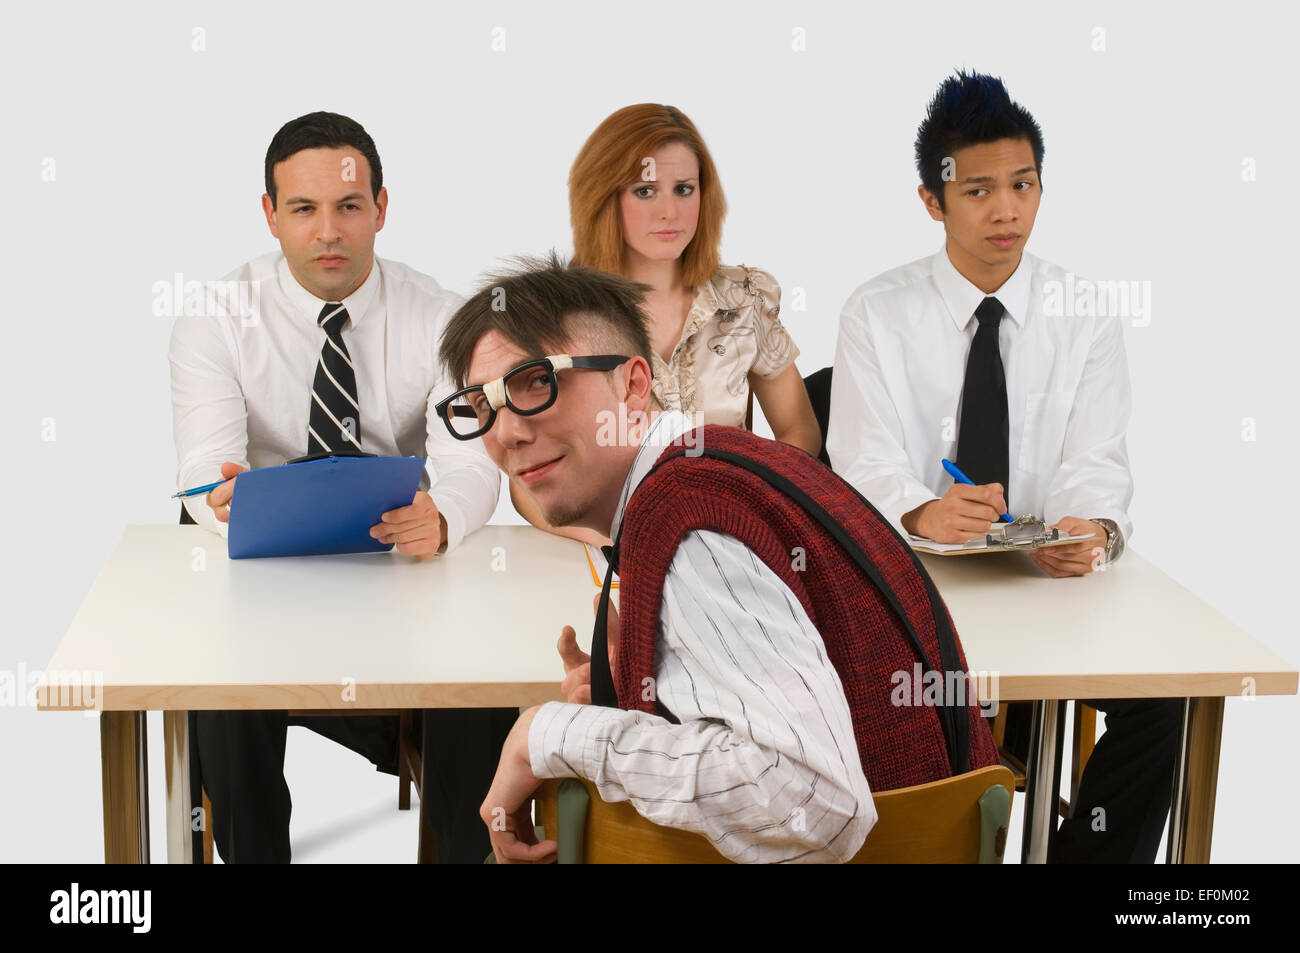 Man at a business interview - Stock Image